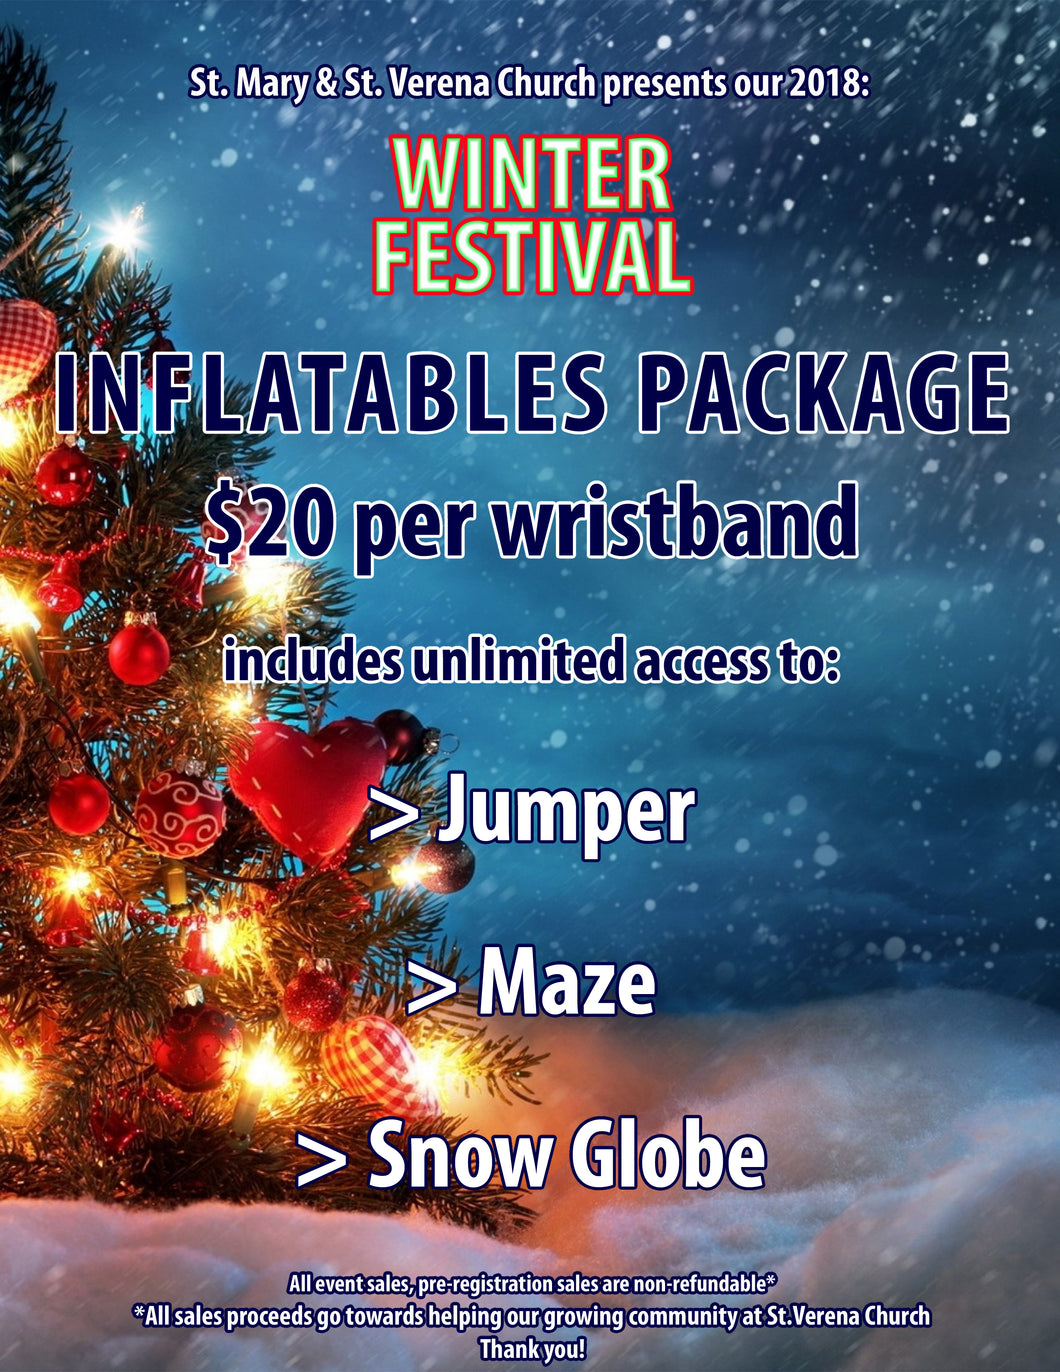 UNLIMITED Inflatables Wristband